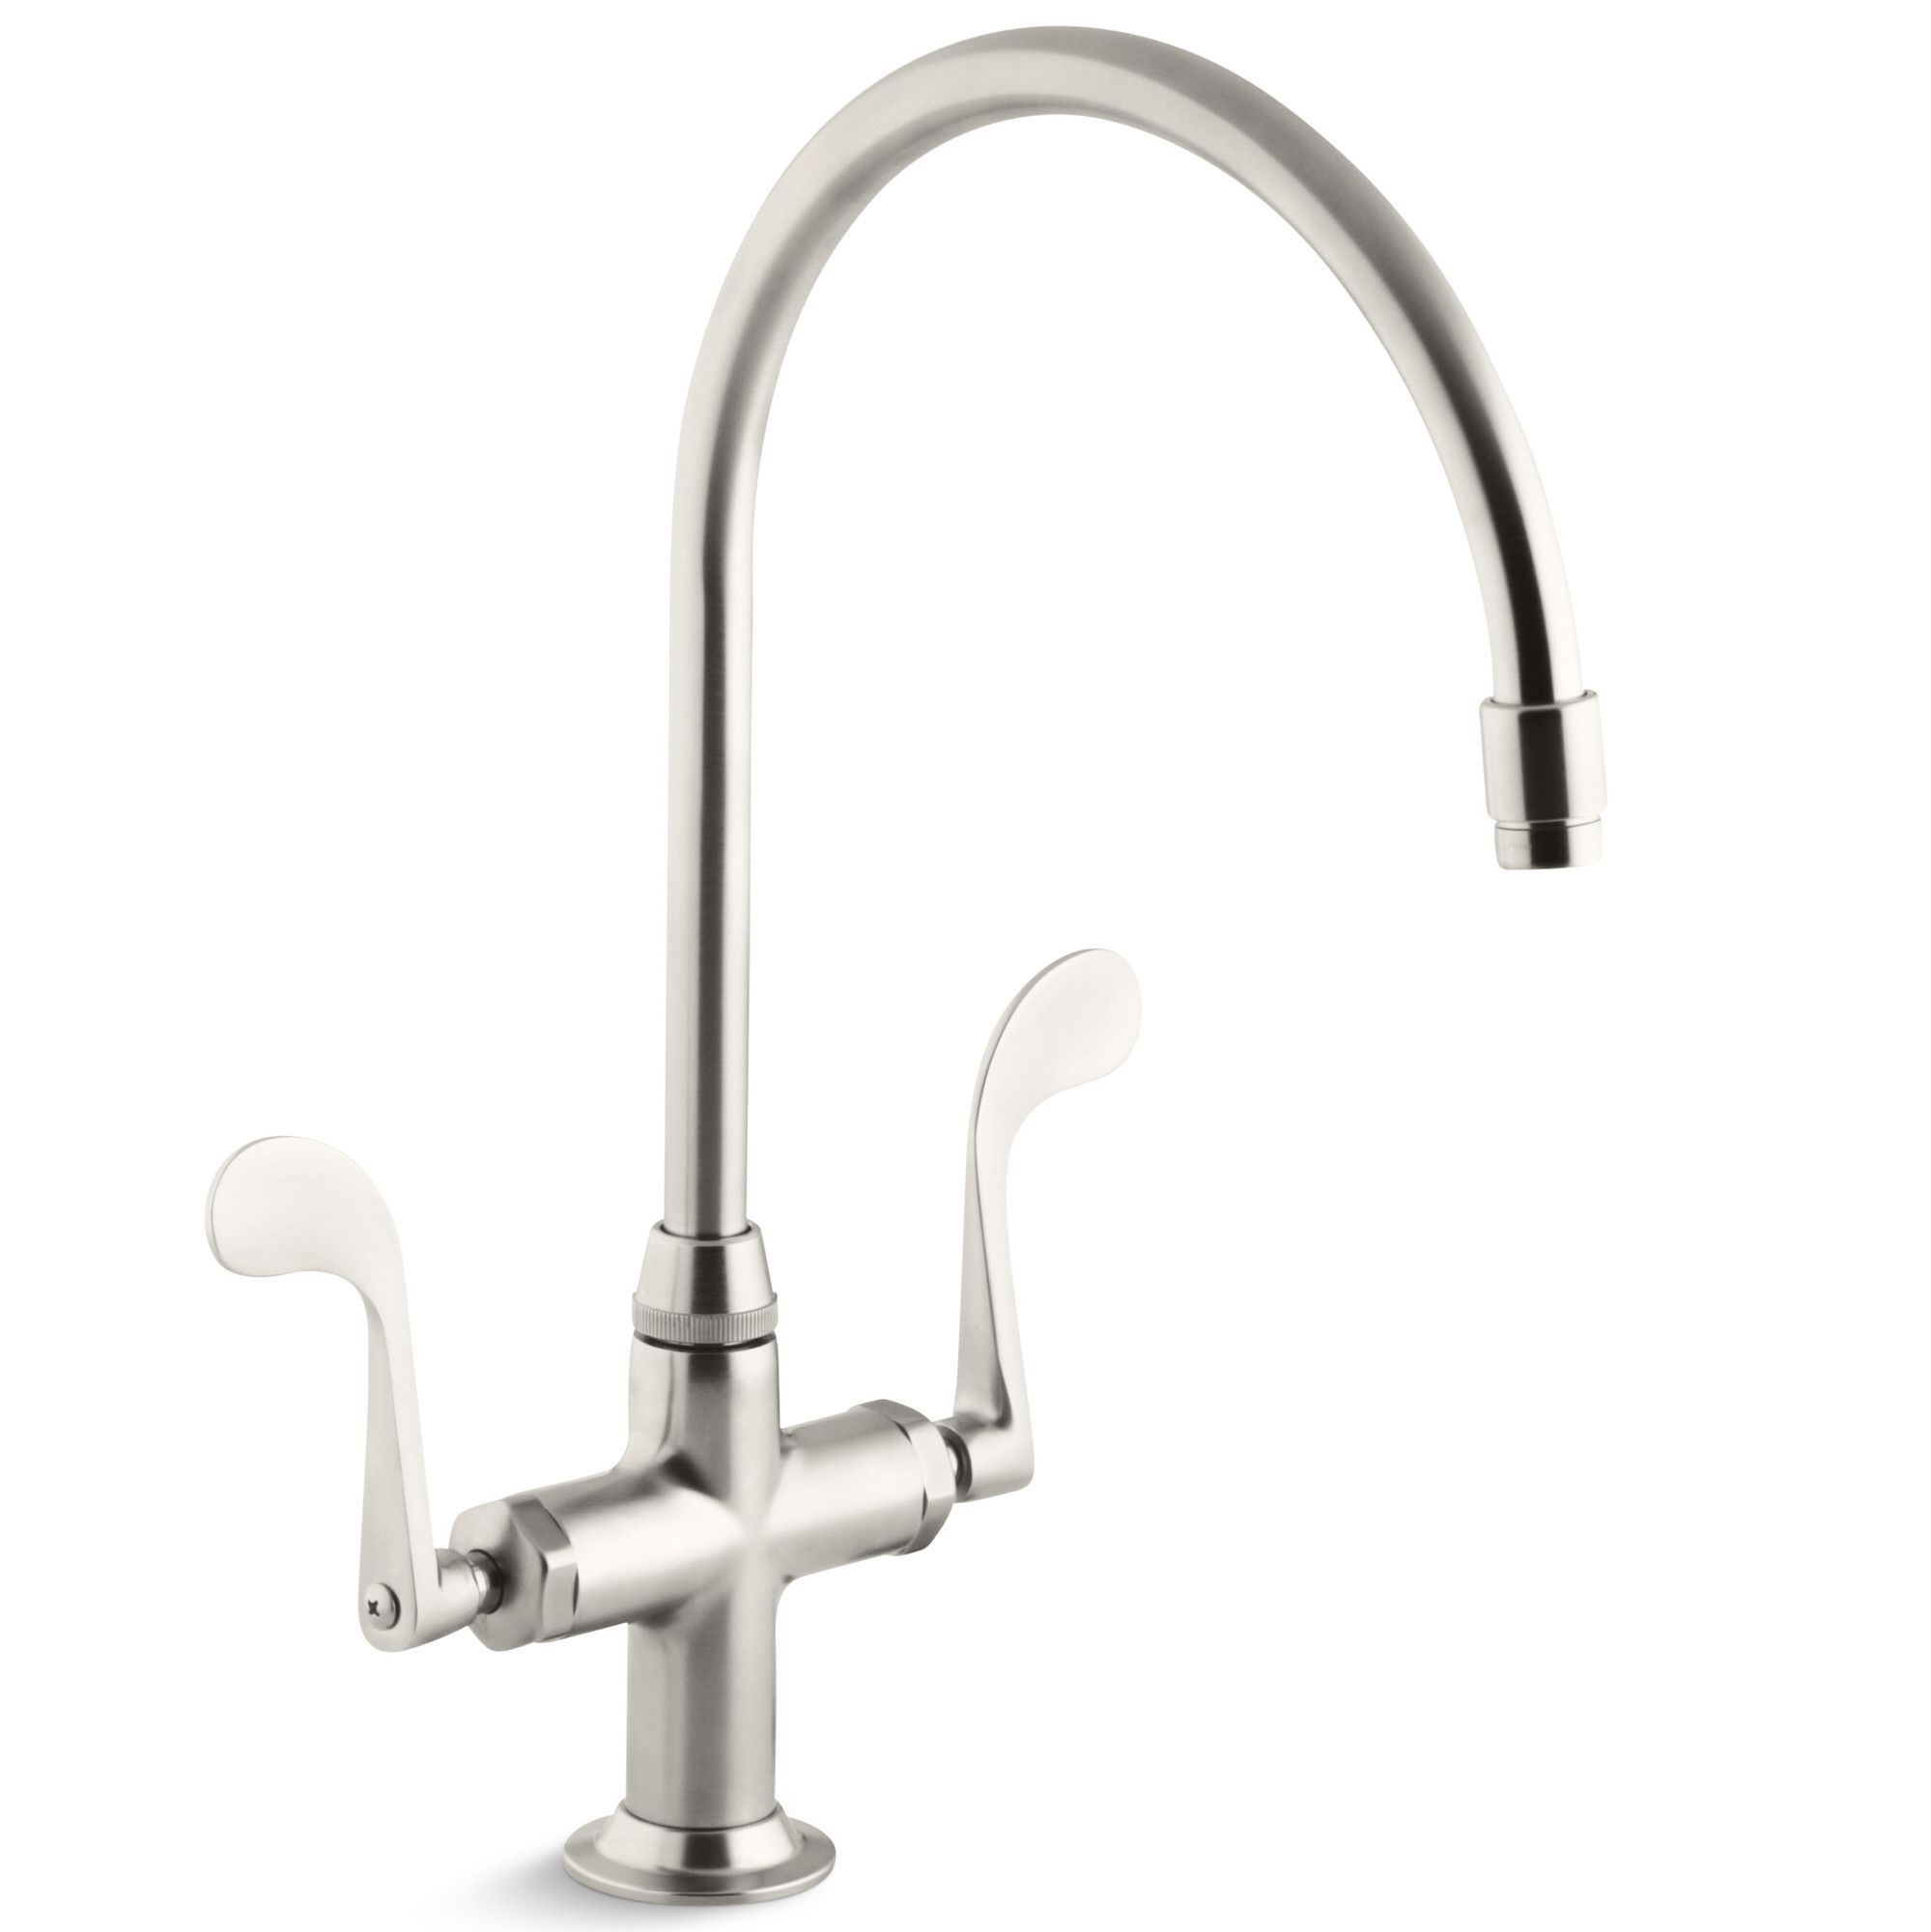 Essex Single Hole Kitchen Sink Faucet With 9 Gooseneck Spout Kitchen Sink Faucets Sink Faucets Stainless Steel Kitchen Faucet